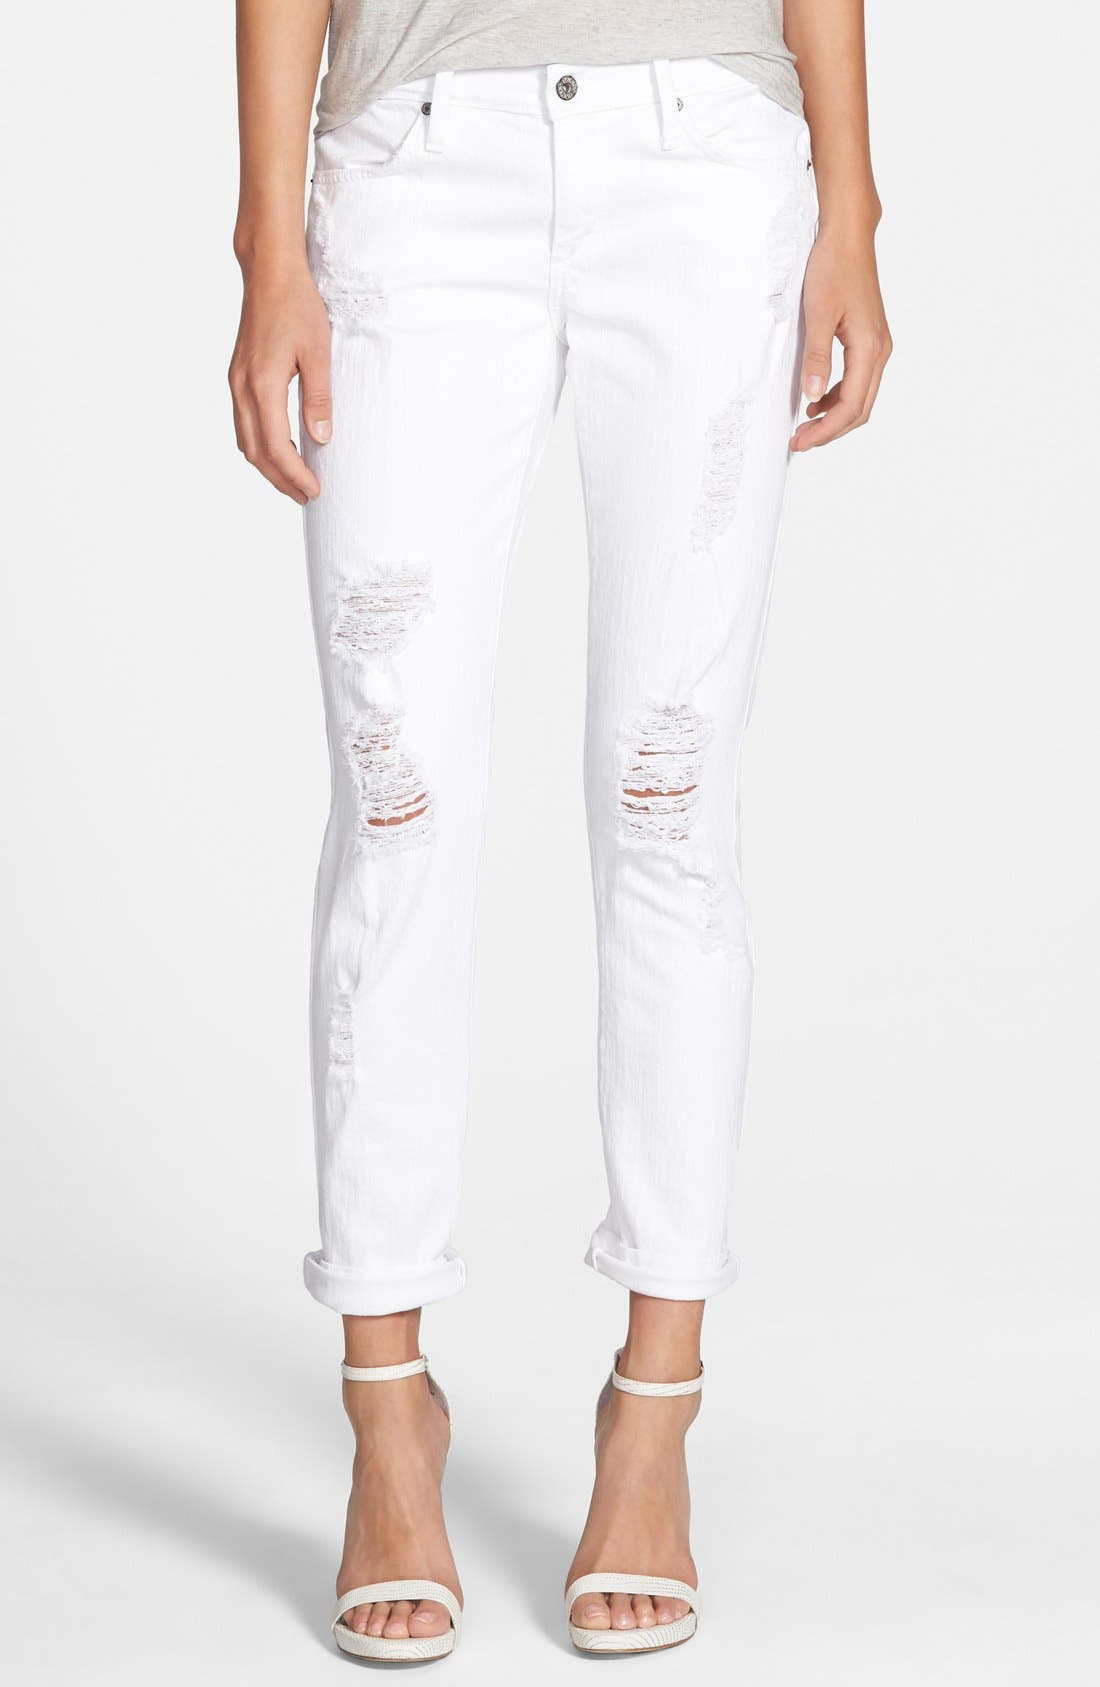 Main Image - James Jeans 'Neo Beau' Stretch Boyfriend Jeans (Destroyed White)